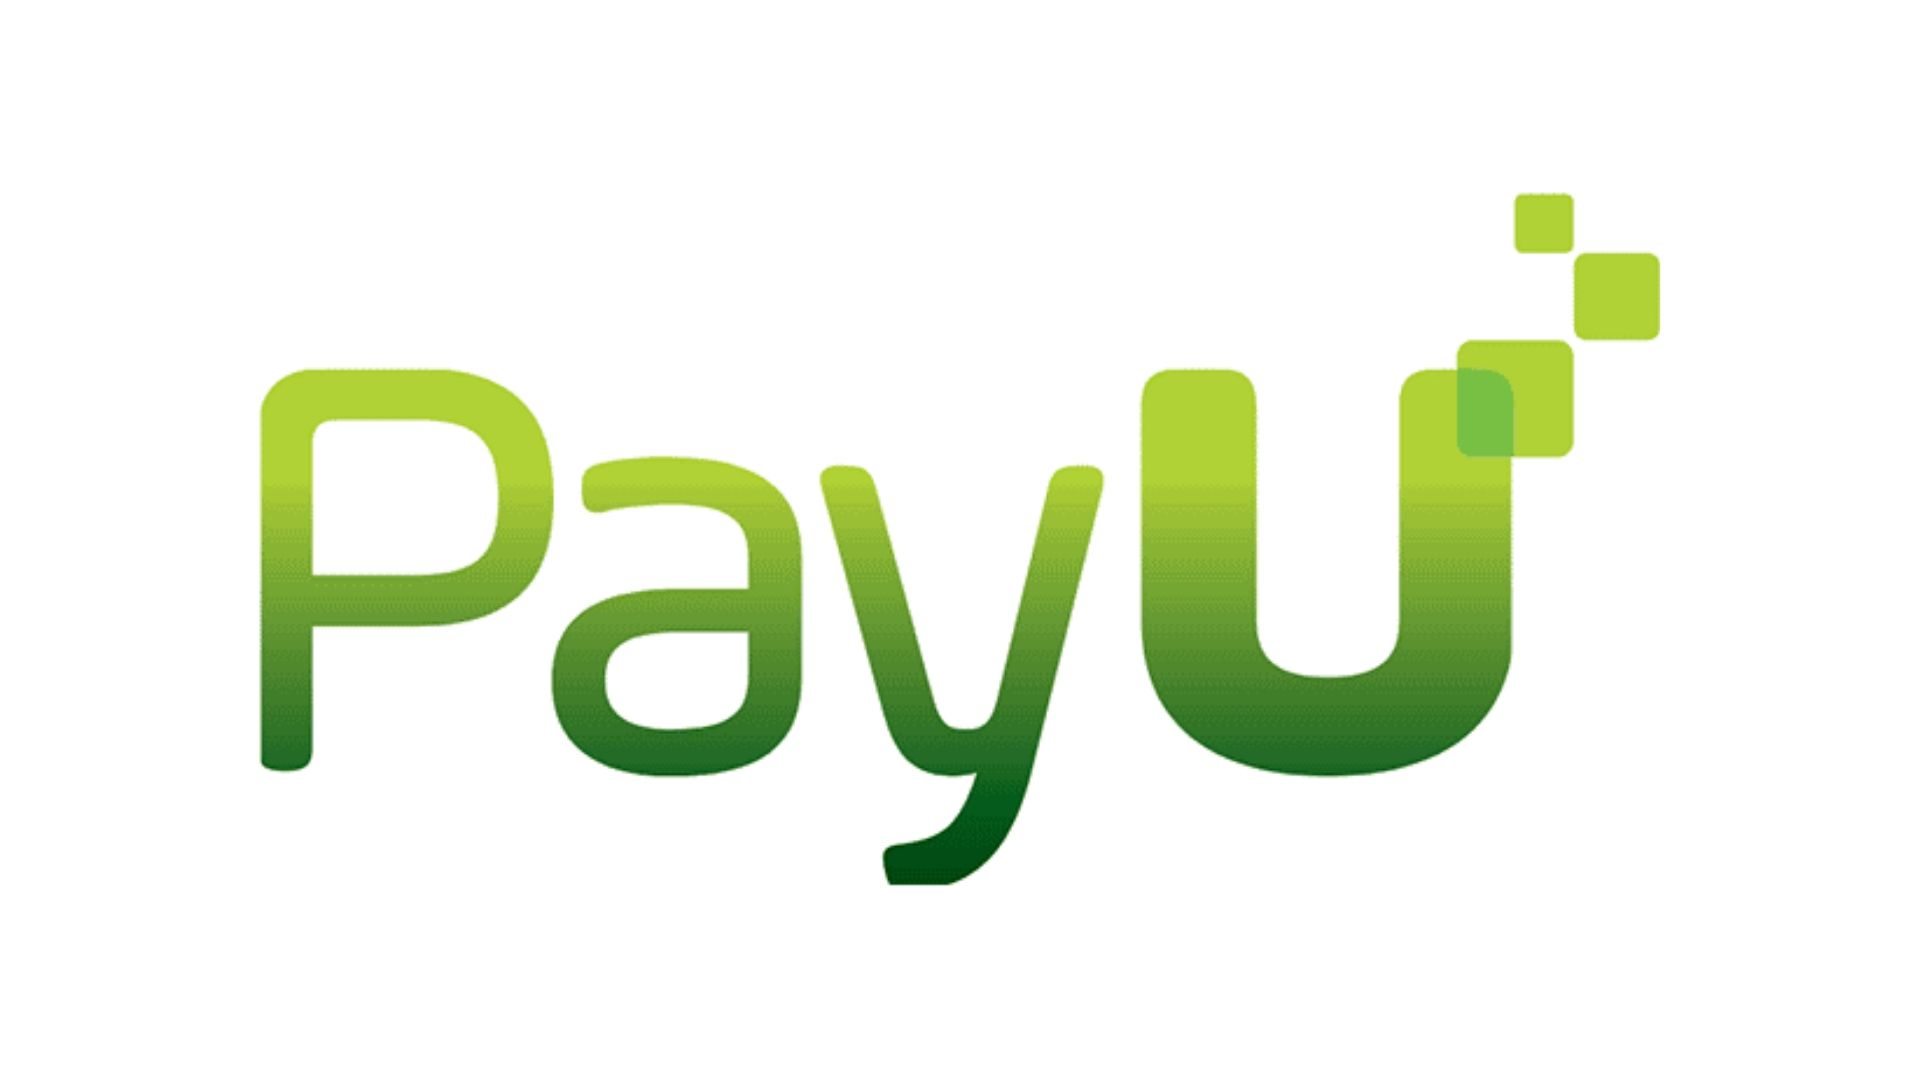 RoomCloud manages payments via PayU